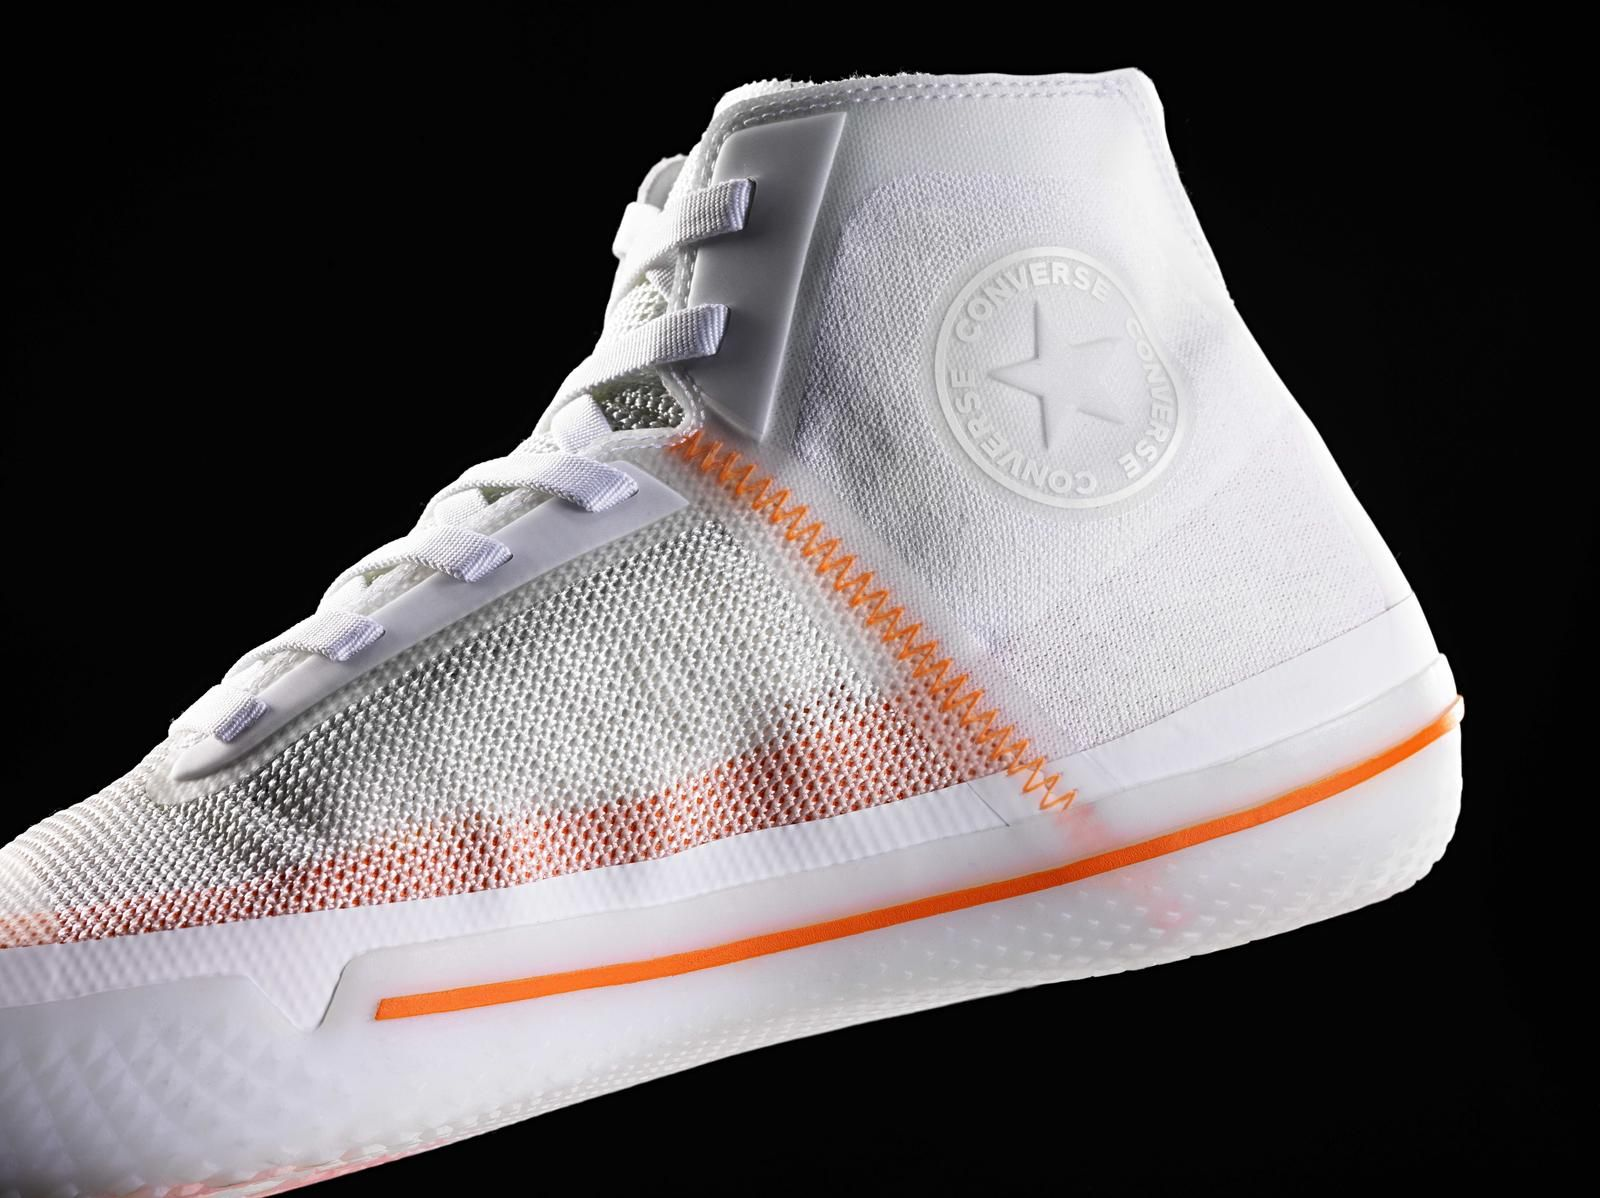 What's New (and Familiar) About the Converse All Star Pro BB